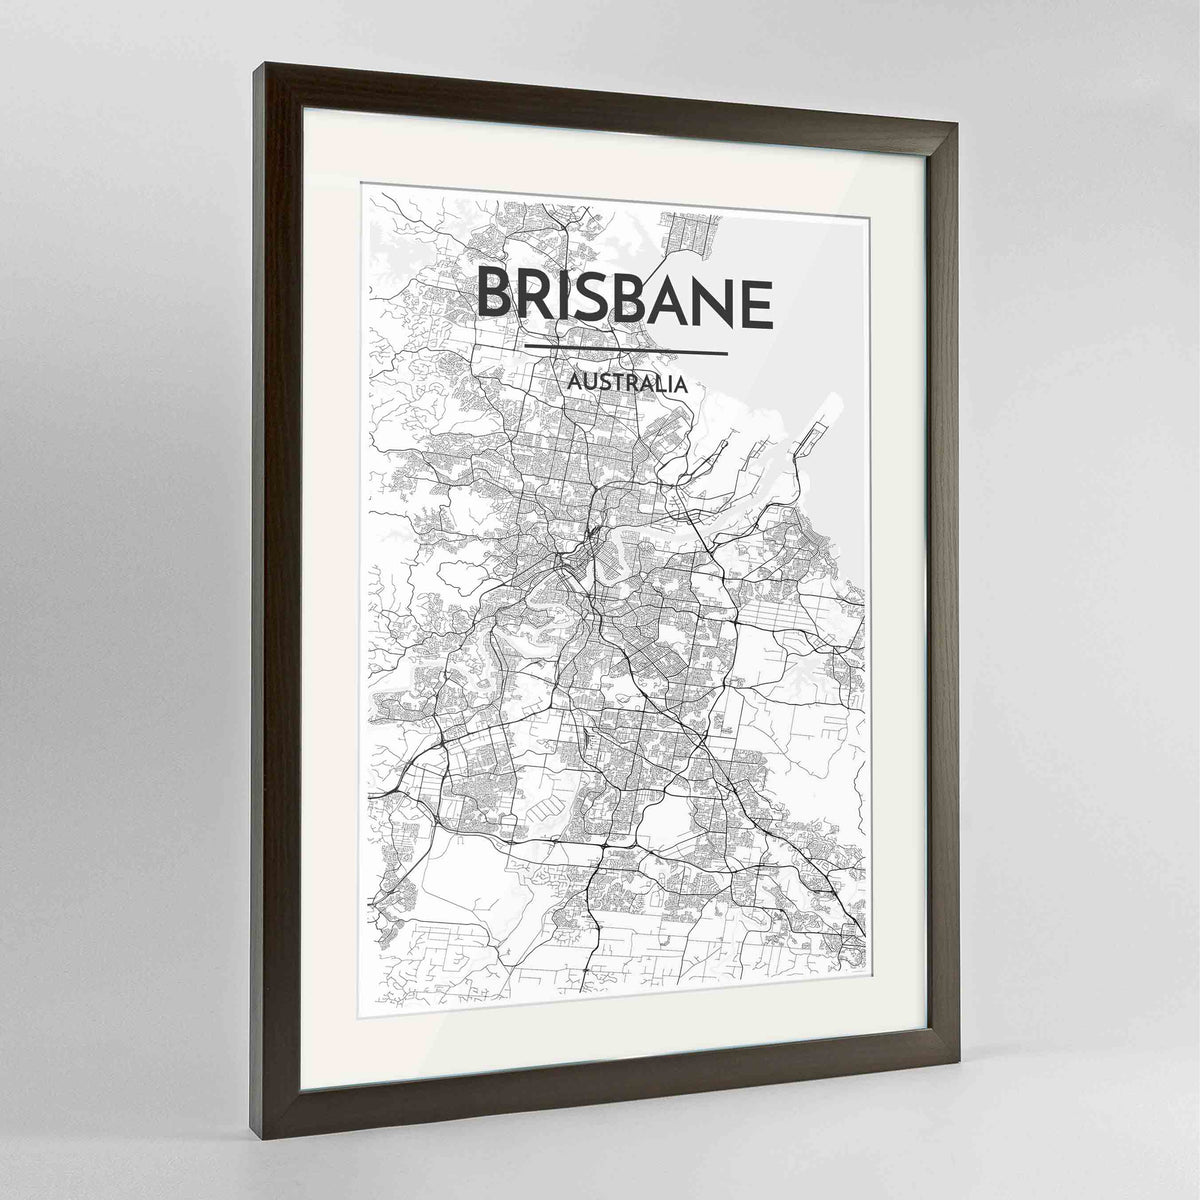 "Framed Brisbane Map Art Print 24x36"" Contemporary Walnut frame Point Two Design Group"